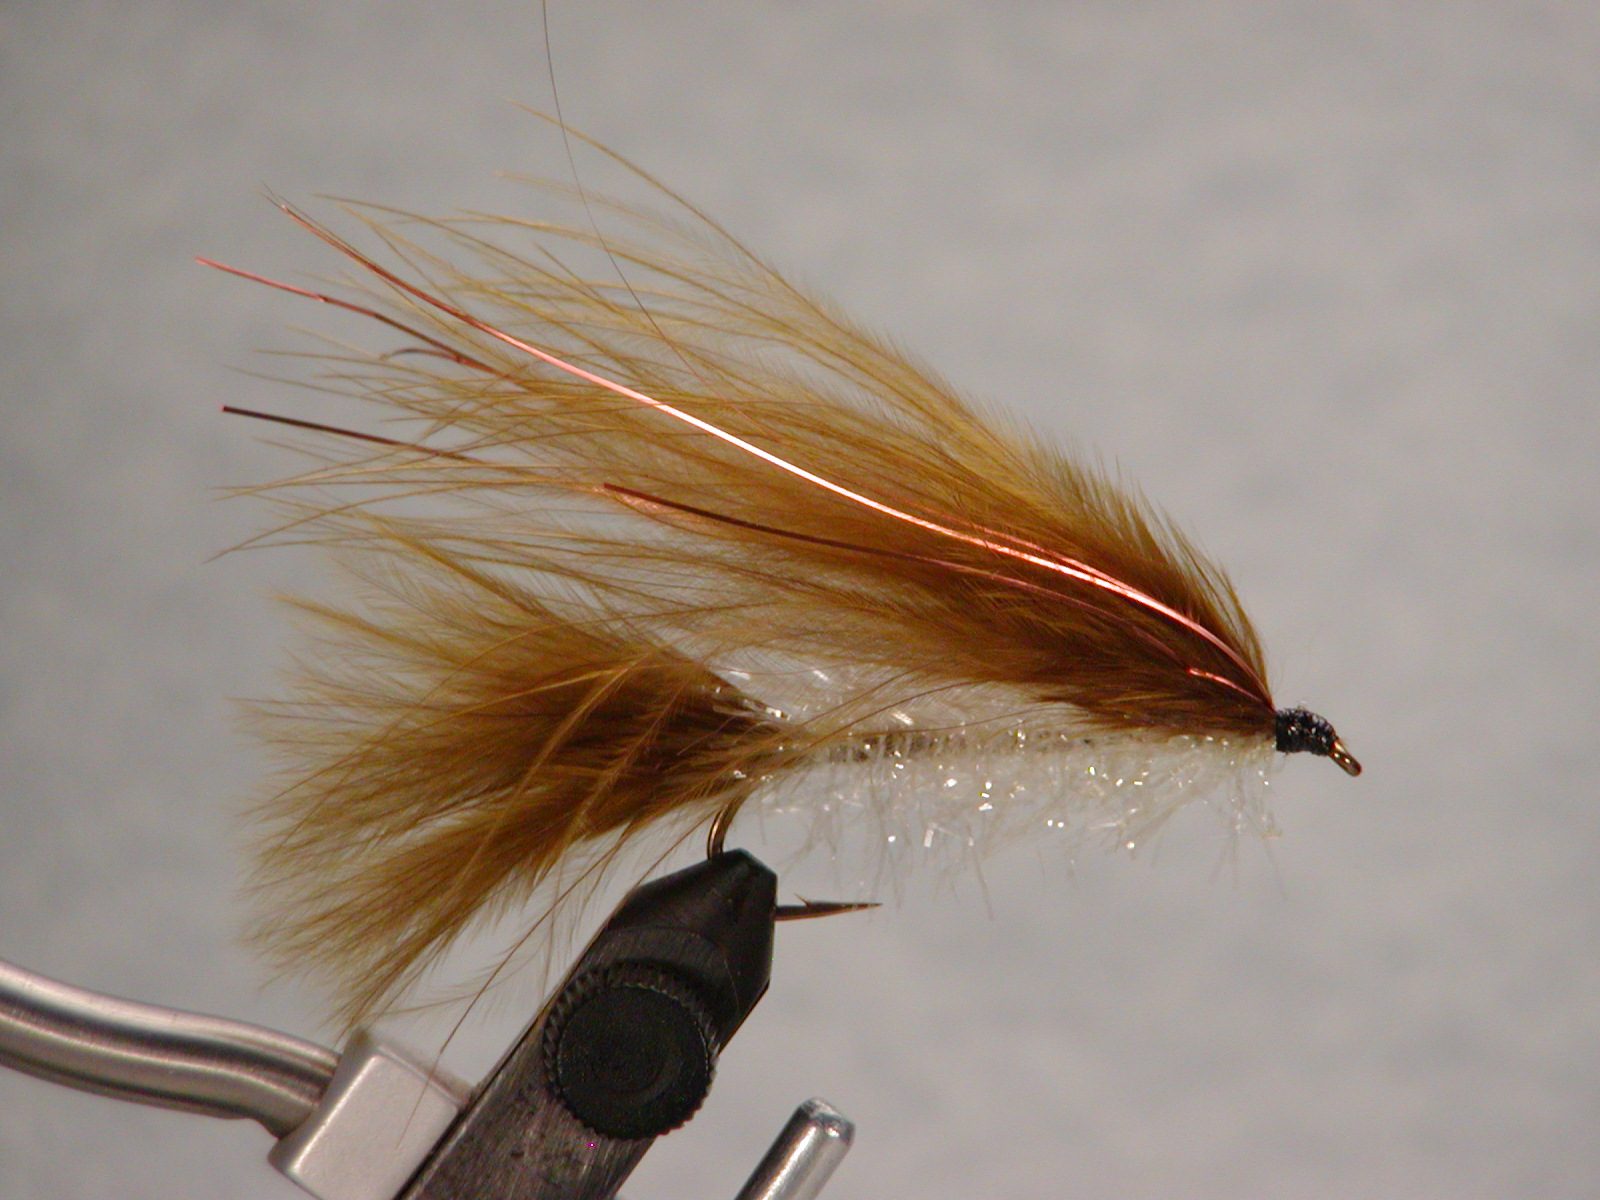 Tui Chub #4, Jay Fair Trolling Fly. $5.49, sold in pairs.